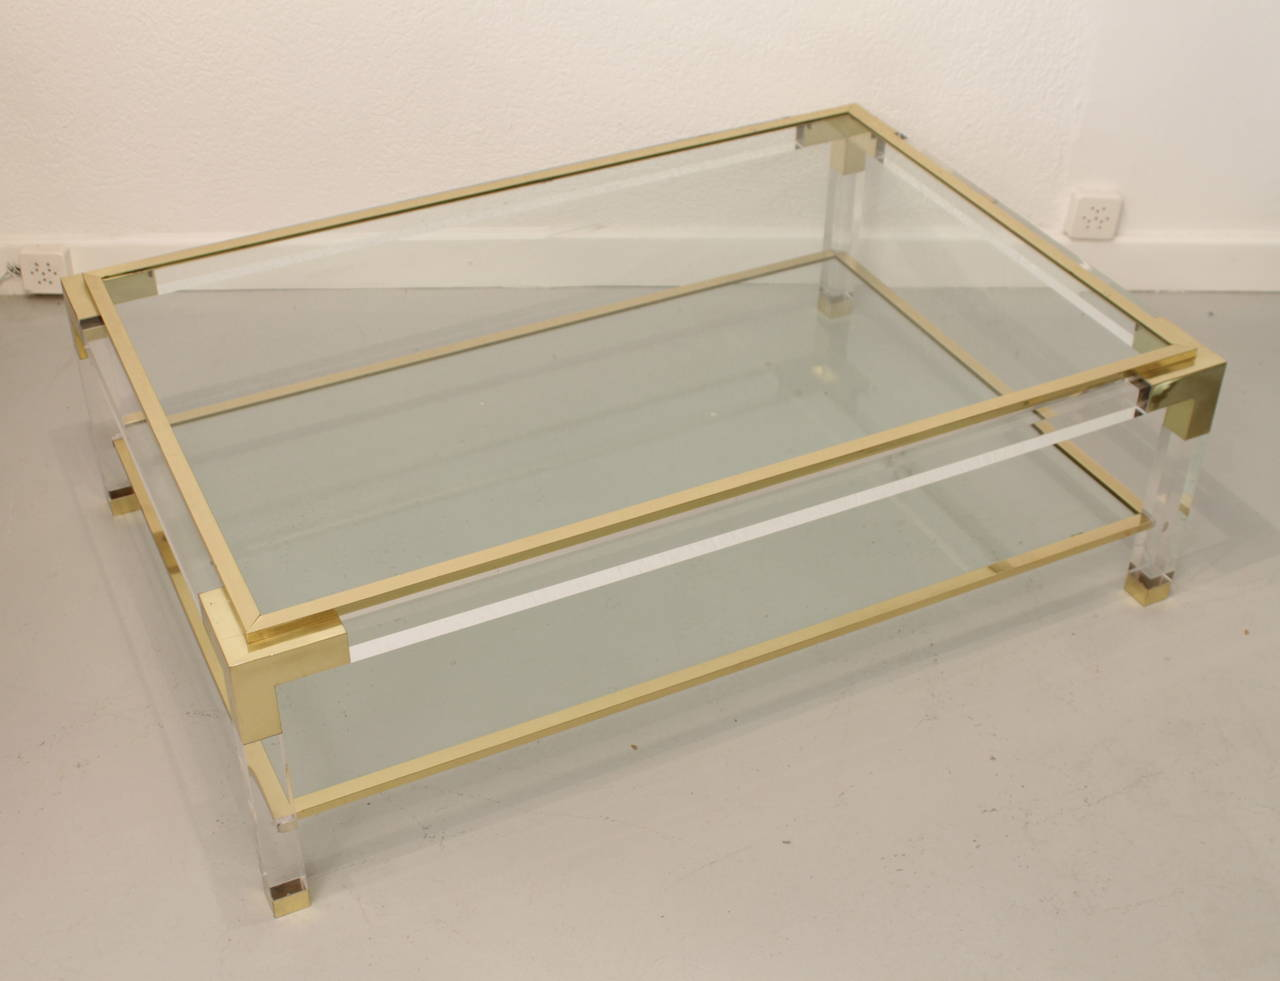 Modern Coffee Table Storage Available Also In Painted Glass As Per Samples In The Bright Or Mat Version (Image 2 of 10)